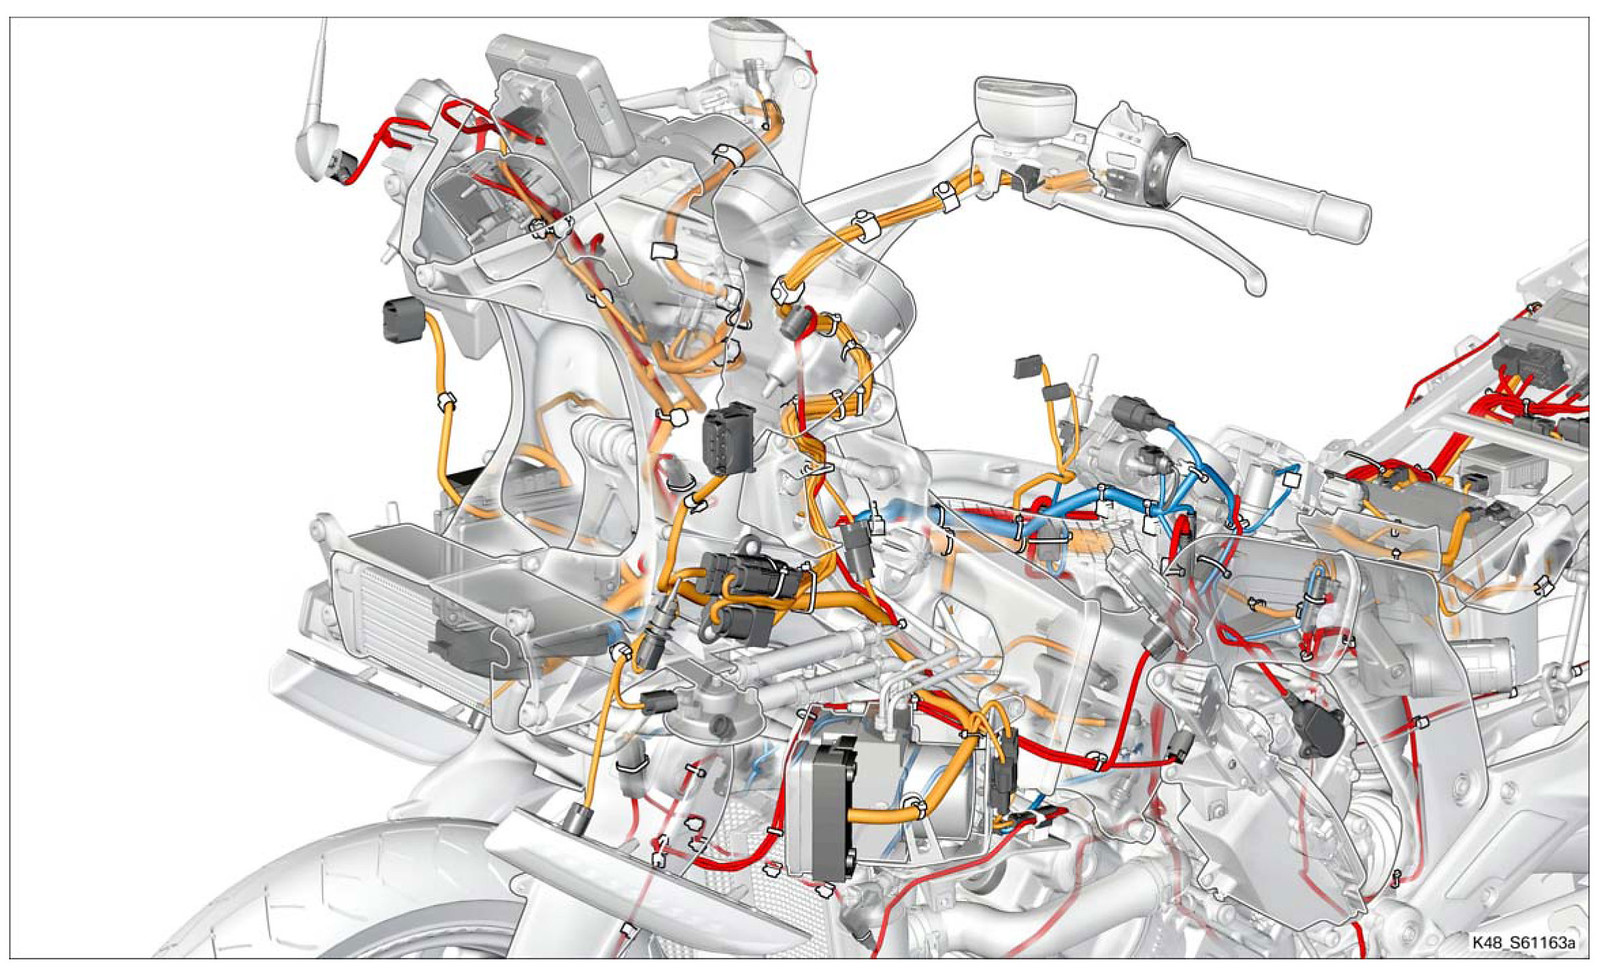 Bmw K 1600 Wiring Diagram Great Design Of Mars 10464 Diagrams How The K1600 Is Wired Forum Rh K1600forum Com